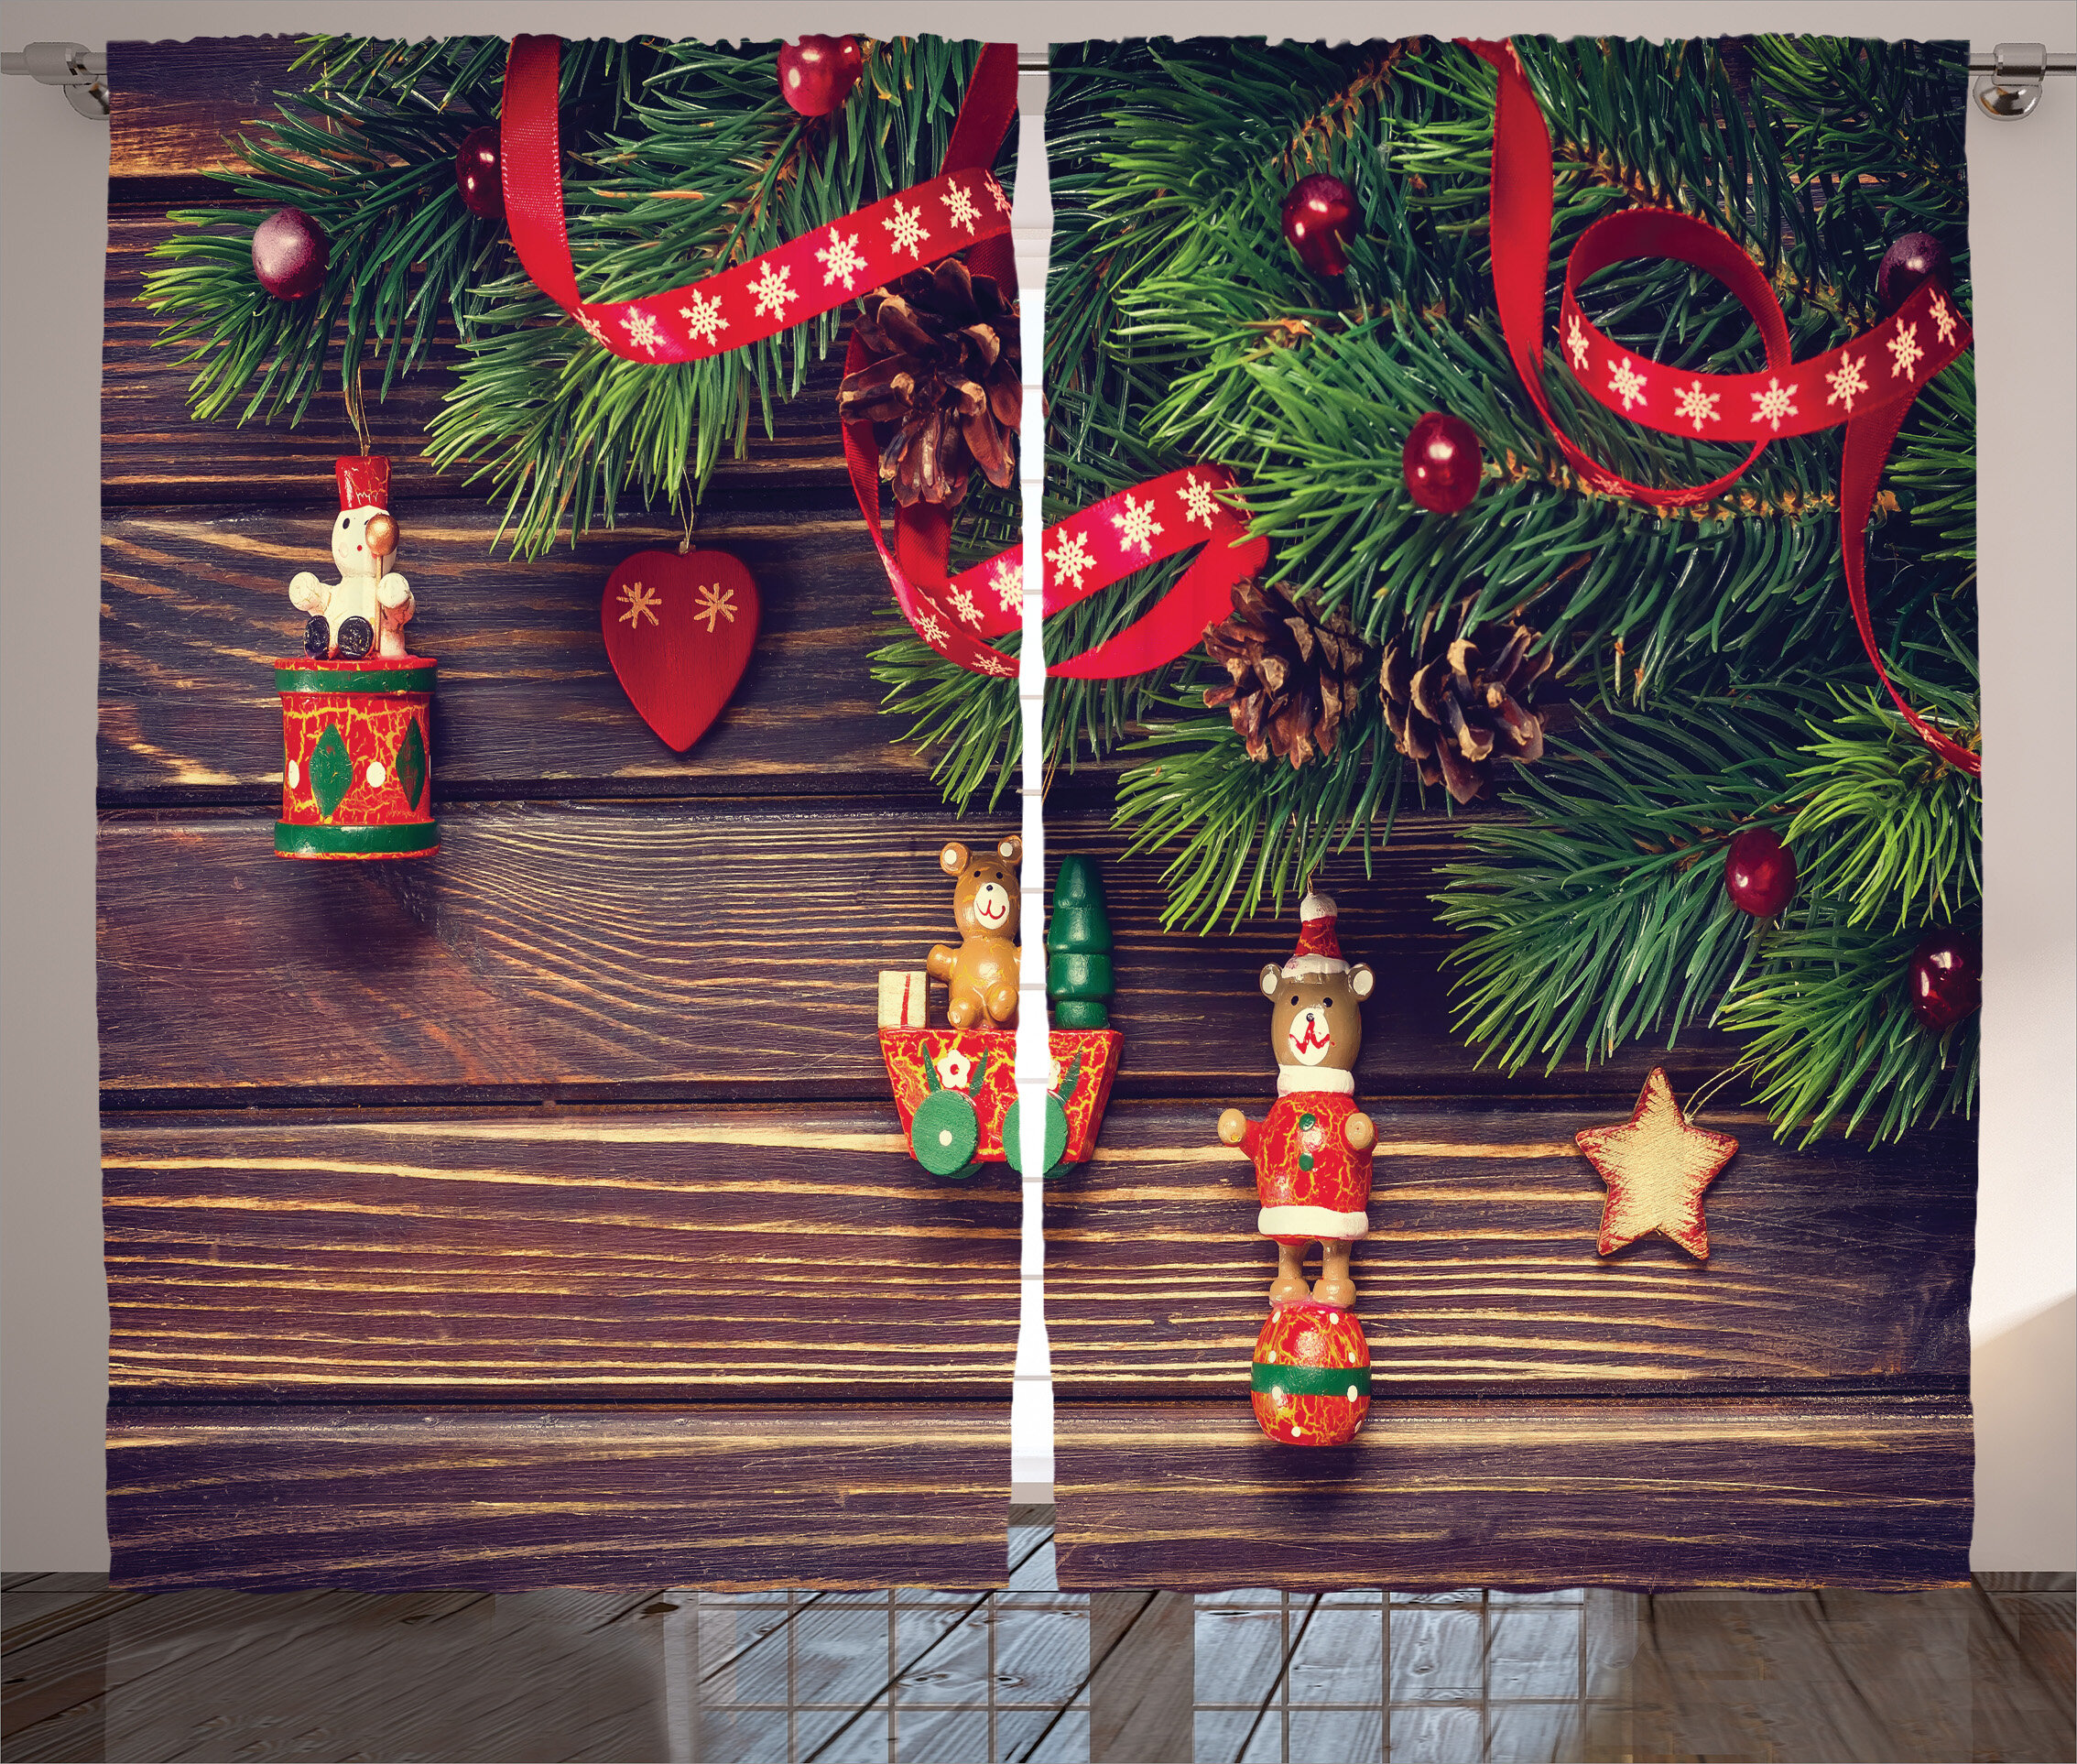 The Holiday Aisle Christmas Decorations Rustic Wood Backdrop ...